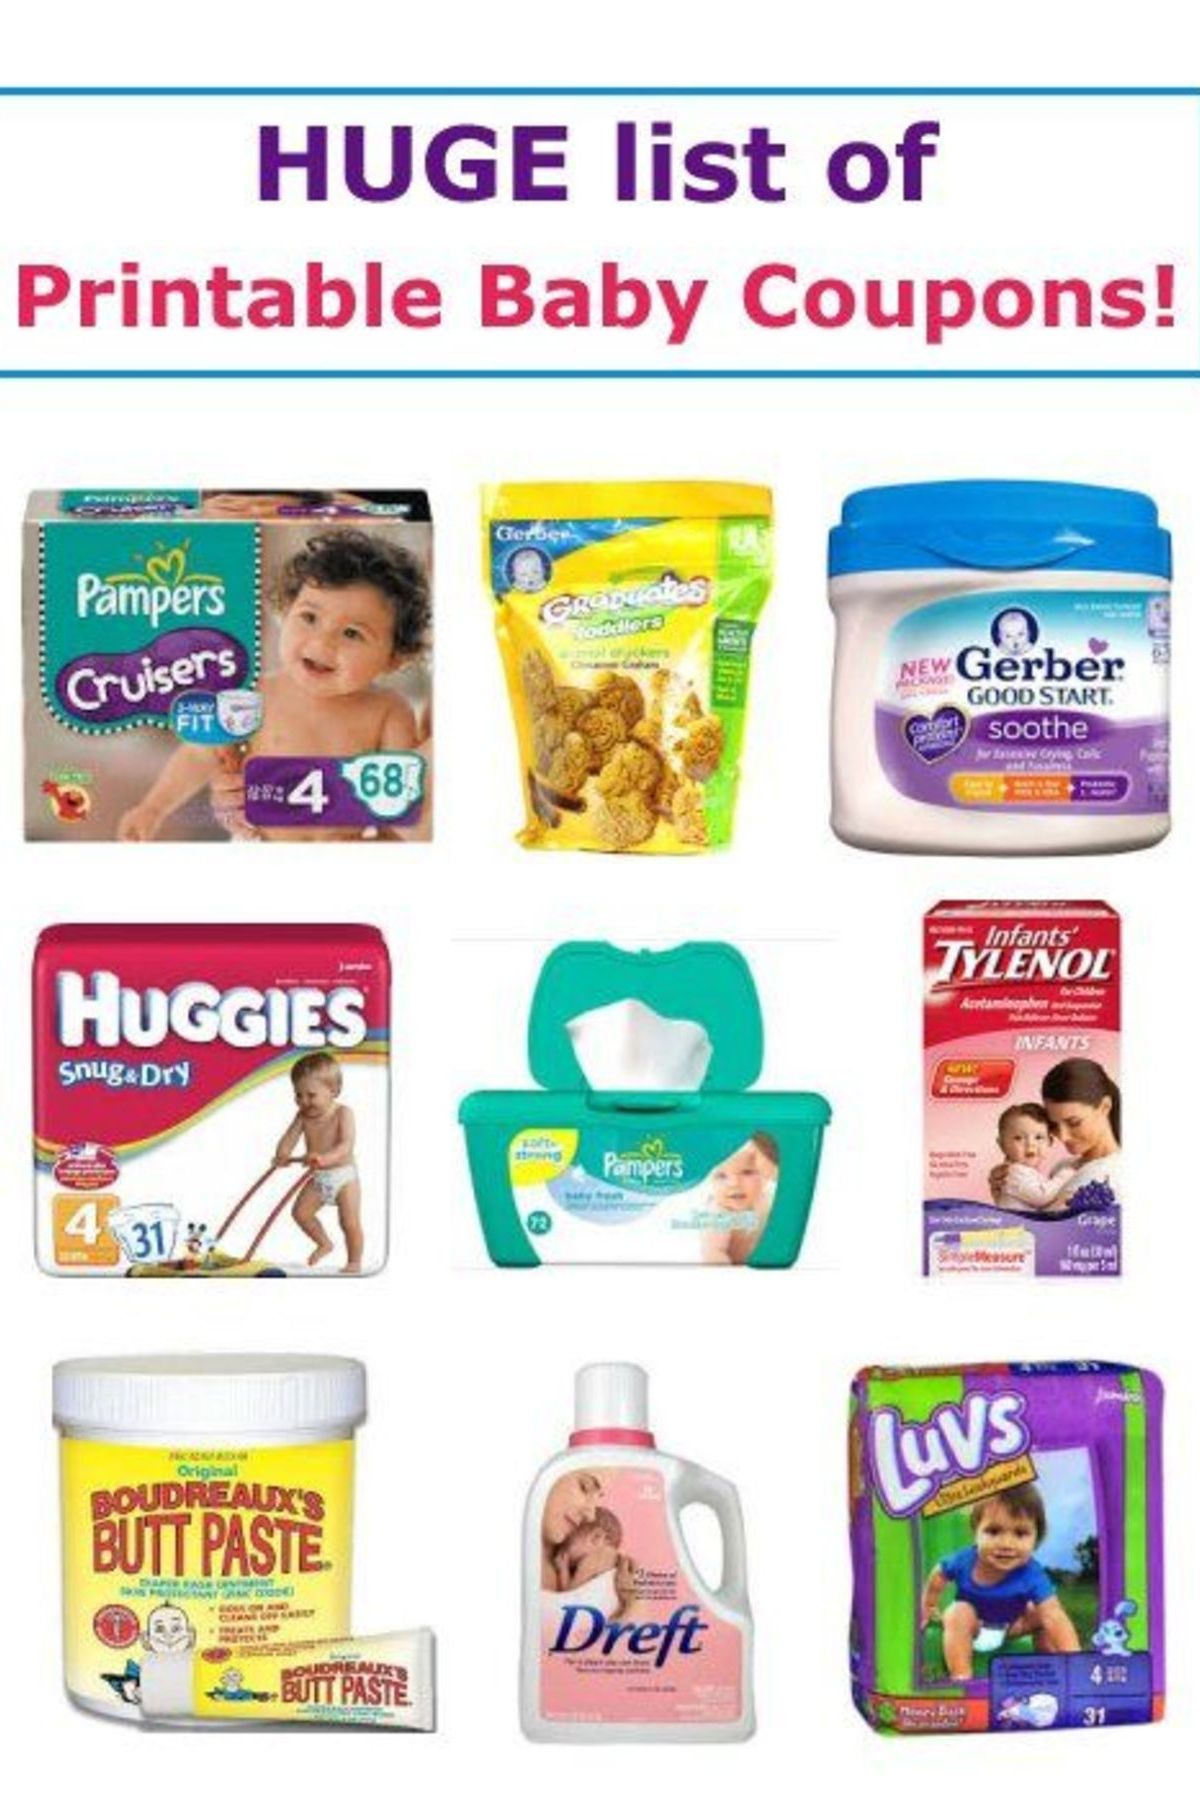 17 Printable Baby Coupons | Baby On A Budget | Baby Coupons, Baby - Free Printable Coupons For Baby Diapers